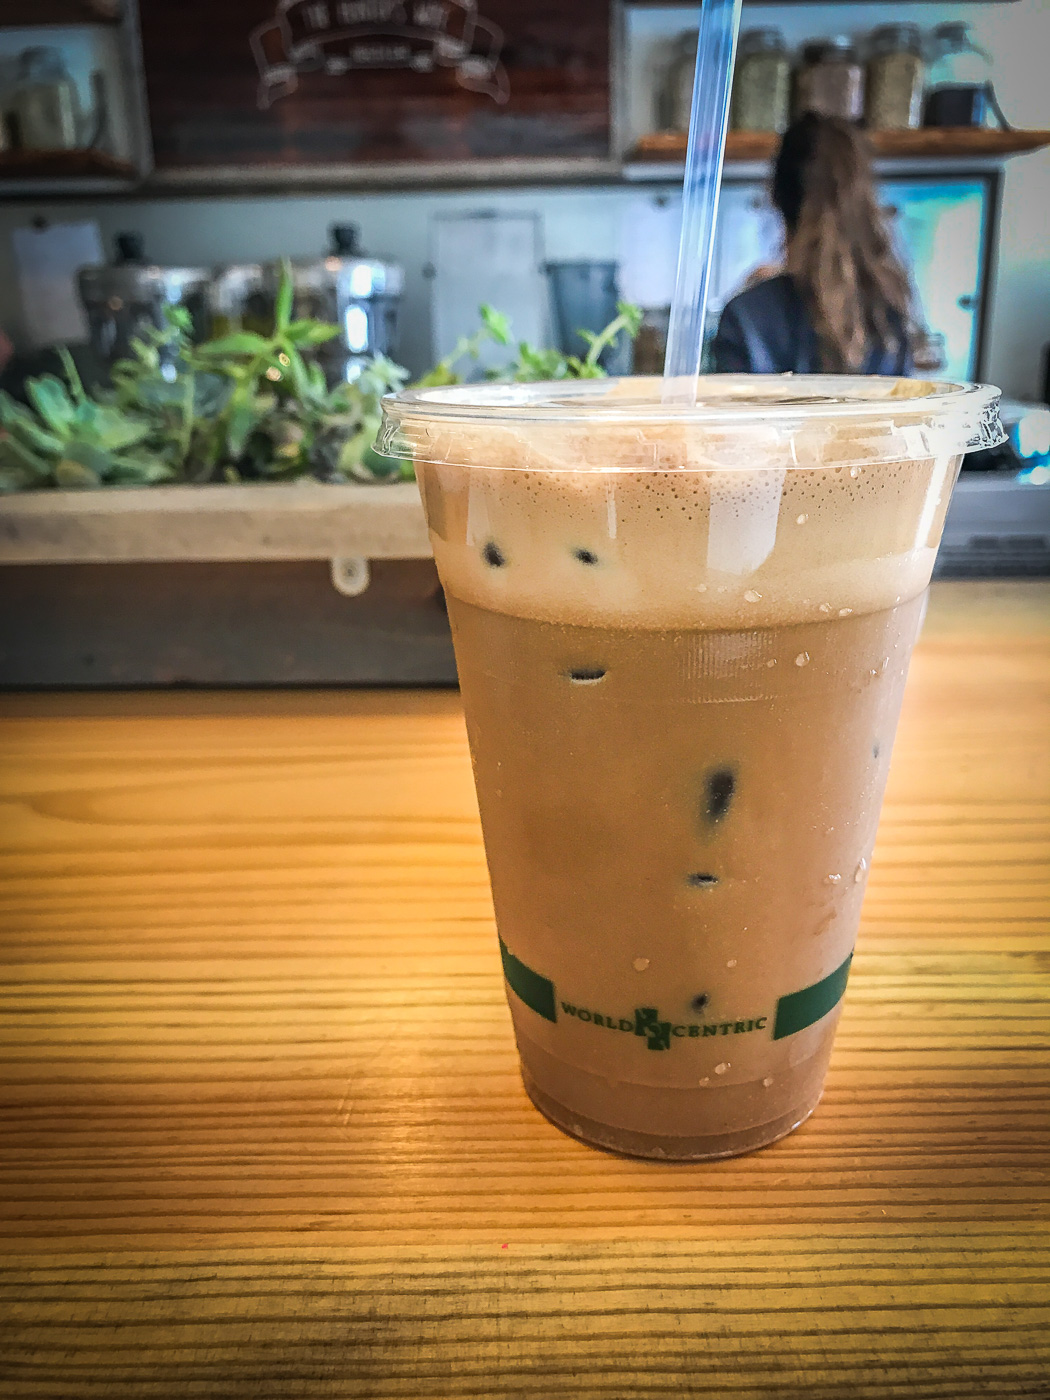 An iced coffee drink sitting on a wooden bar